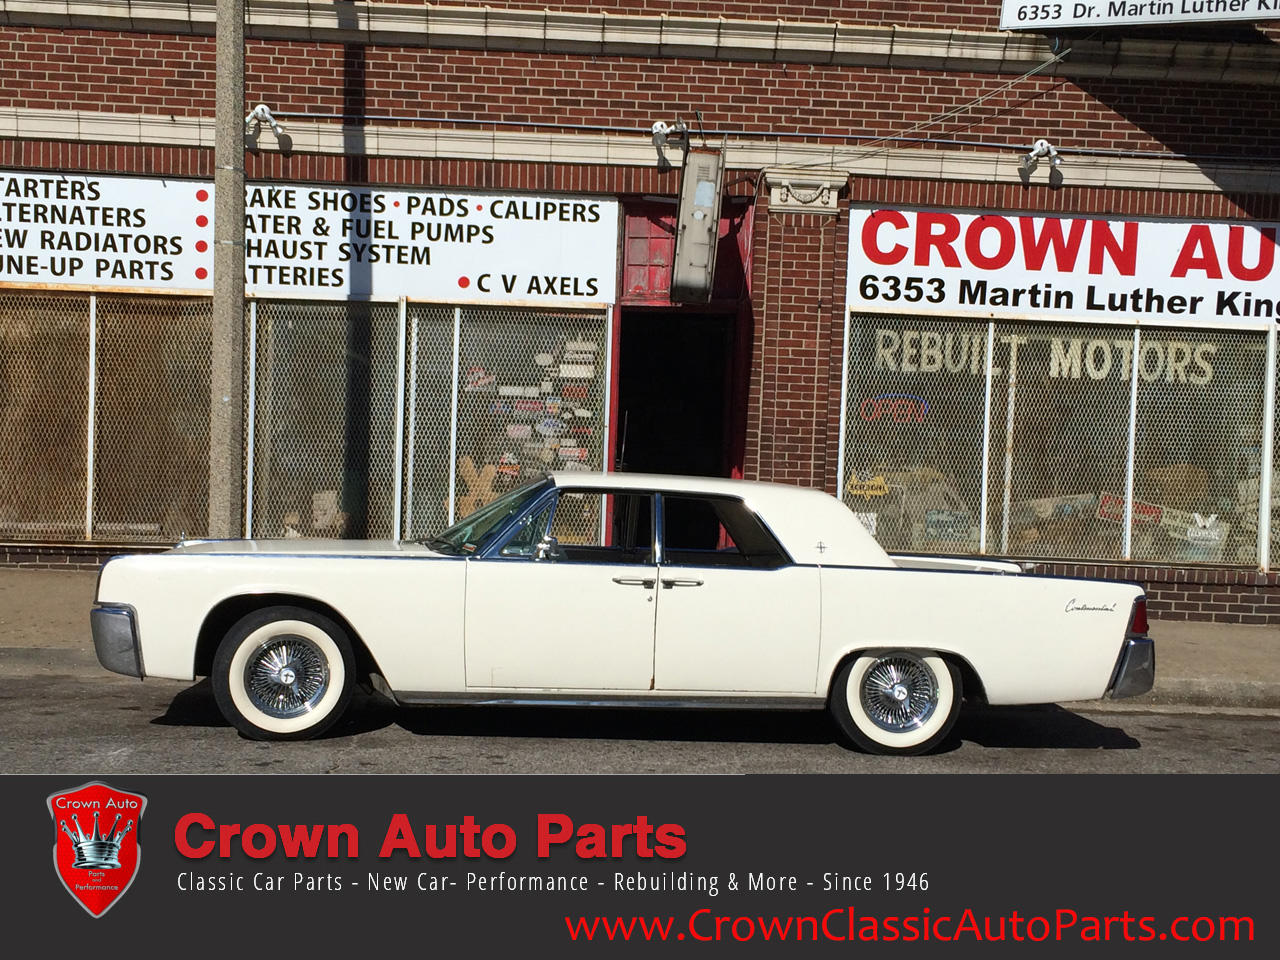 Crown Auto Parts & Rebuilding image 24